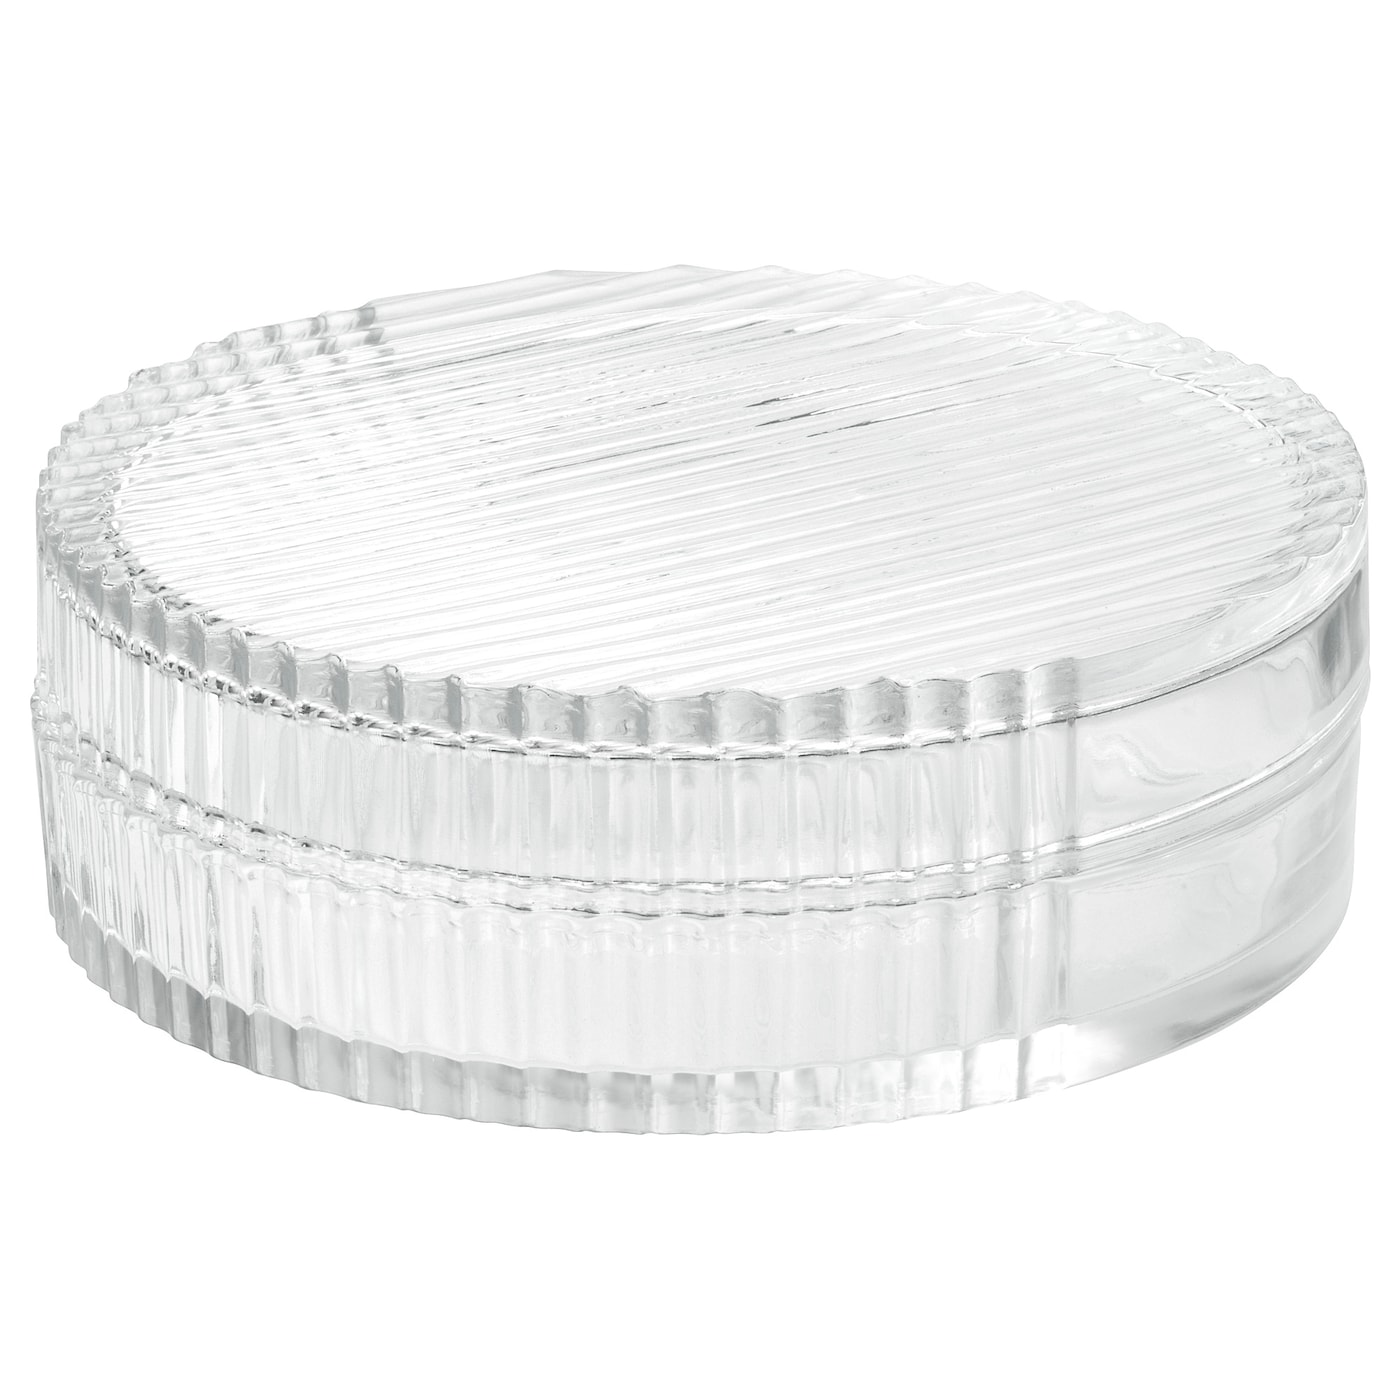 IKEA SAMMANHANG glass box with lid